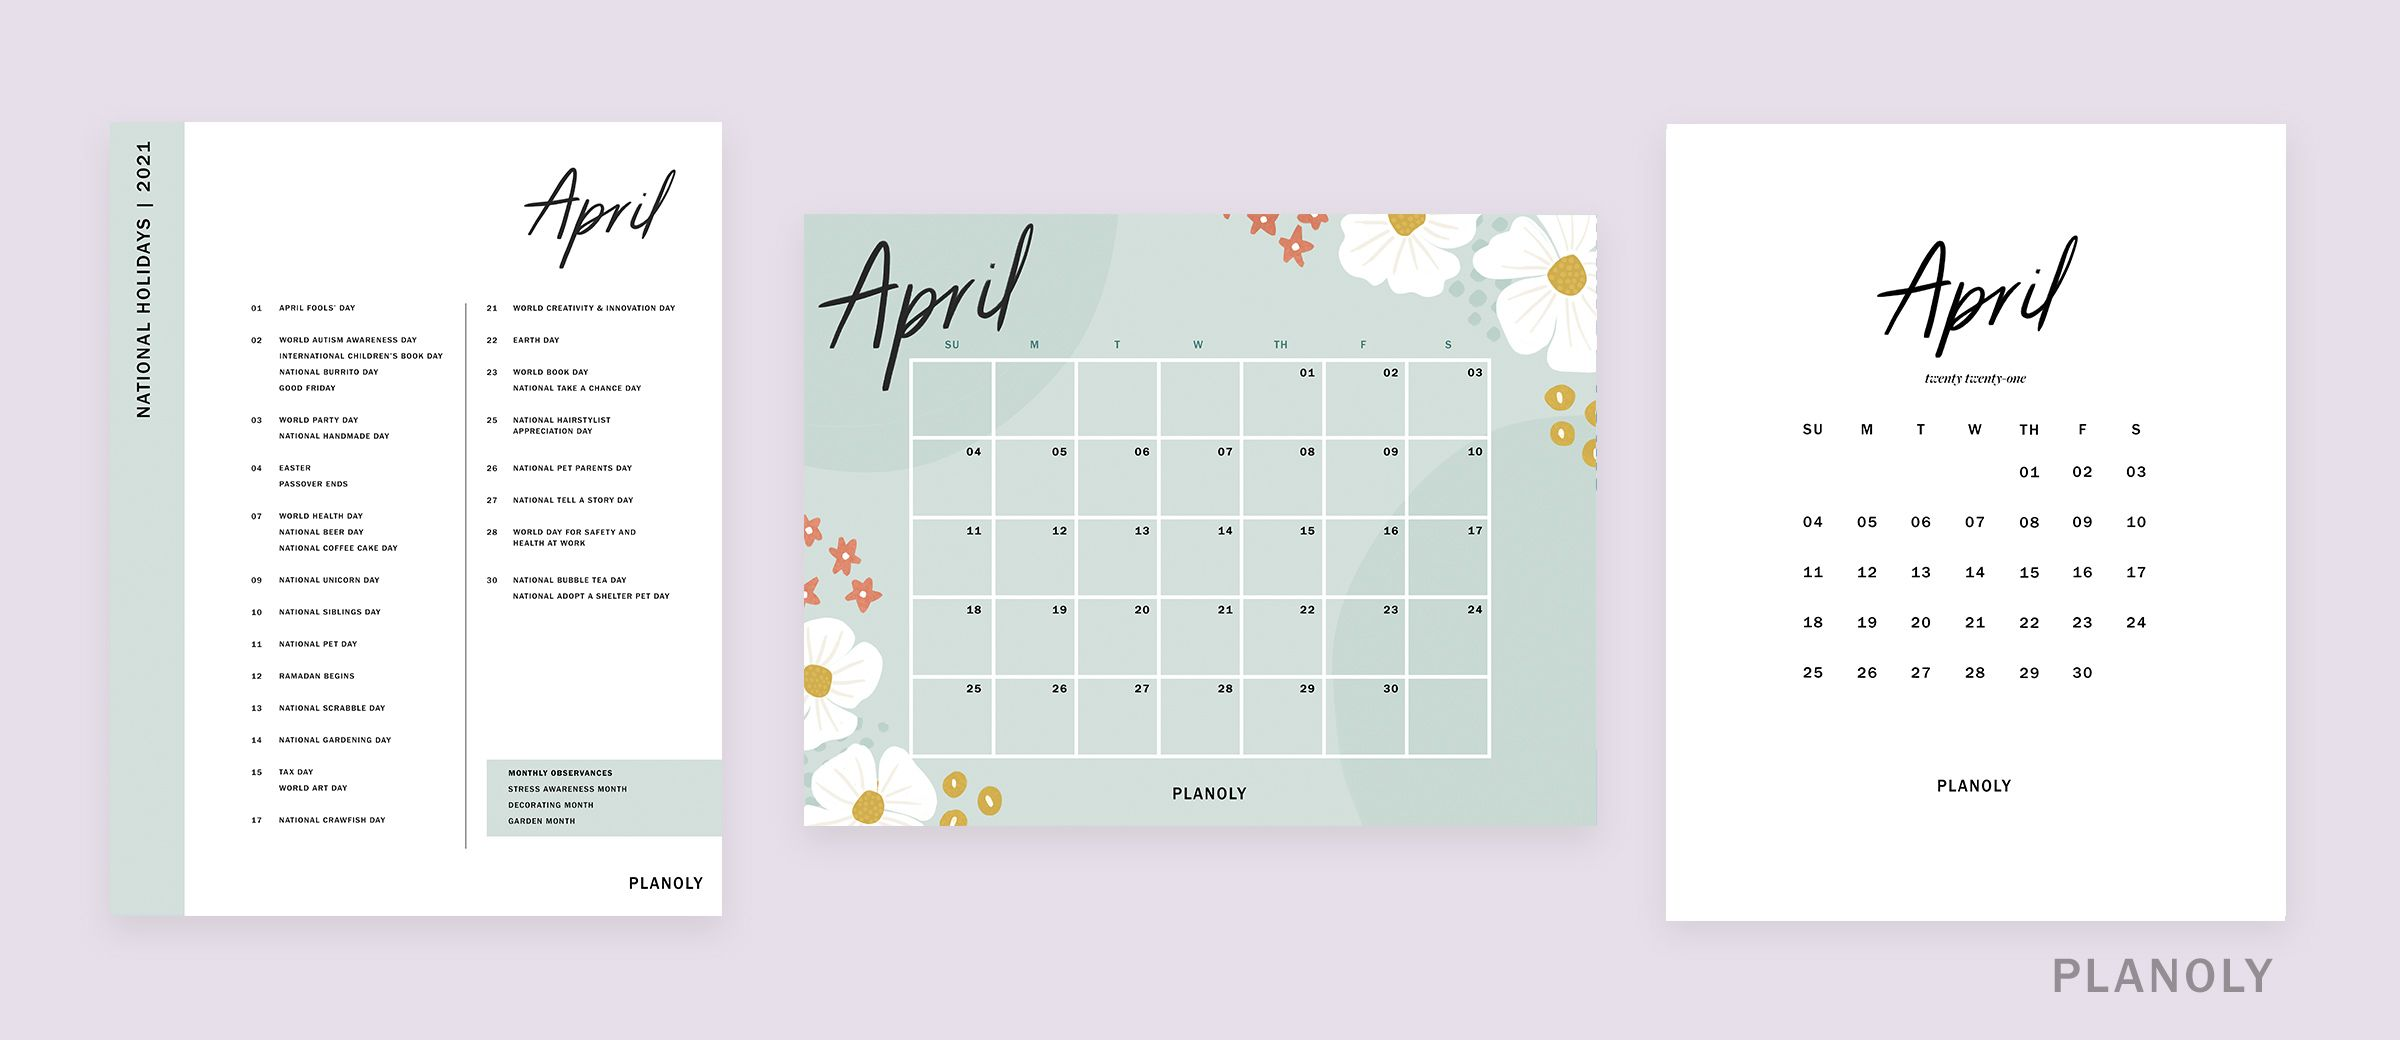 PLANOLY-IG Feed-Q2 Content Calendars-Image 1